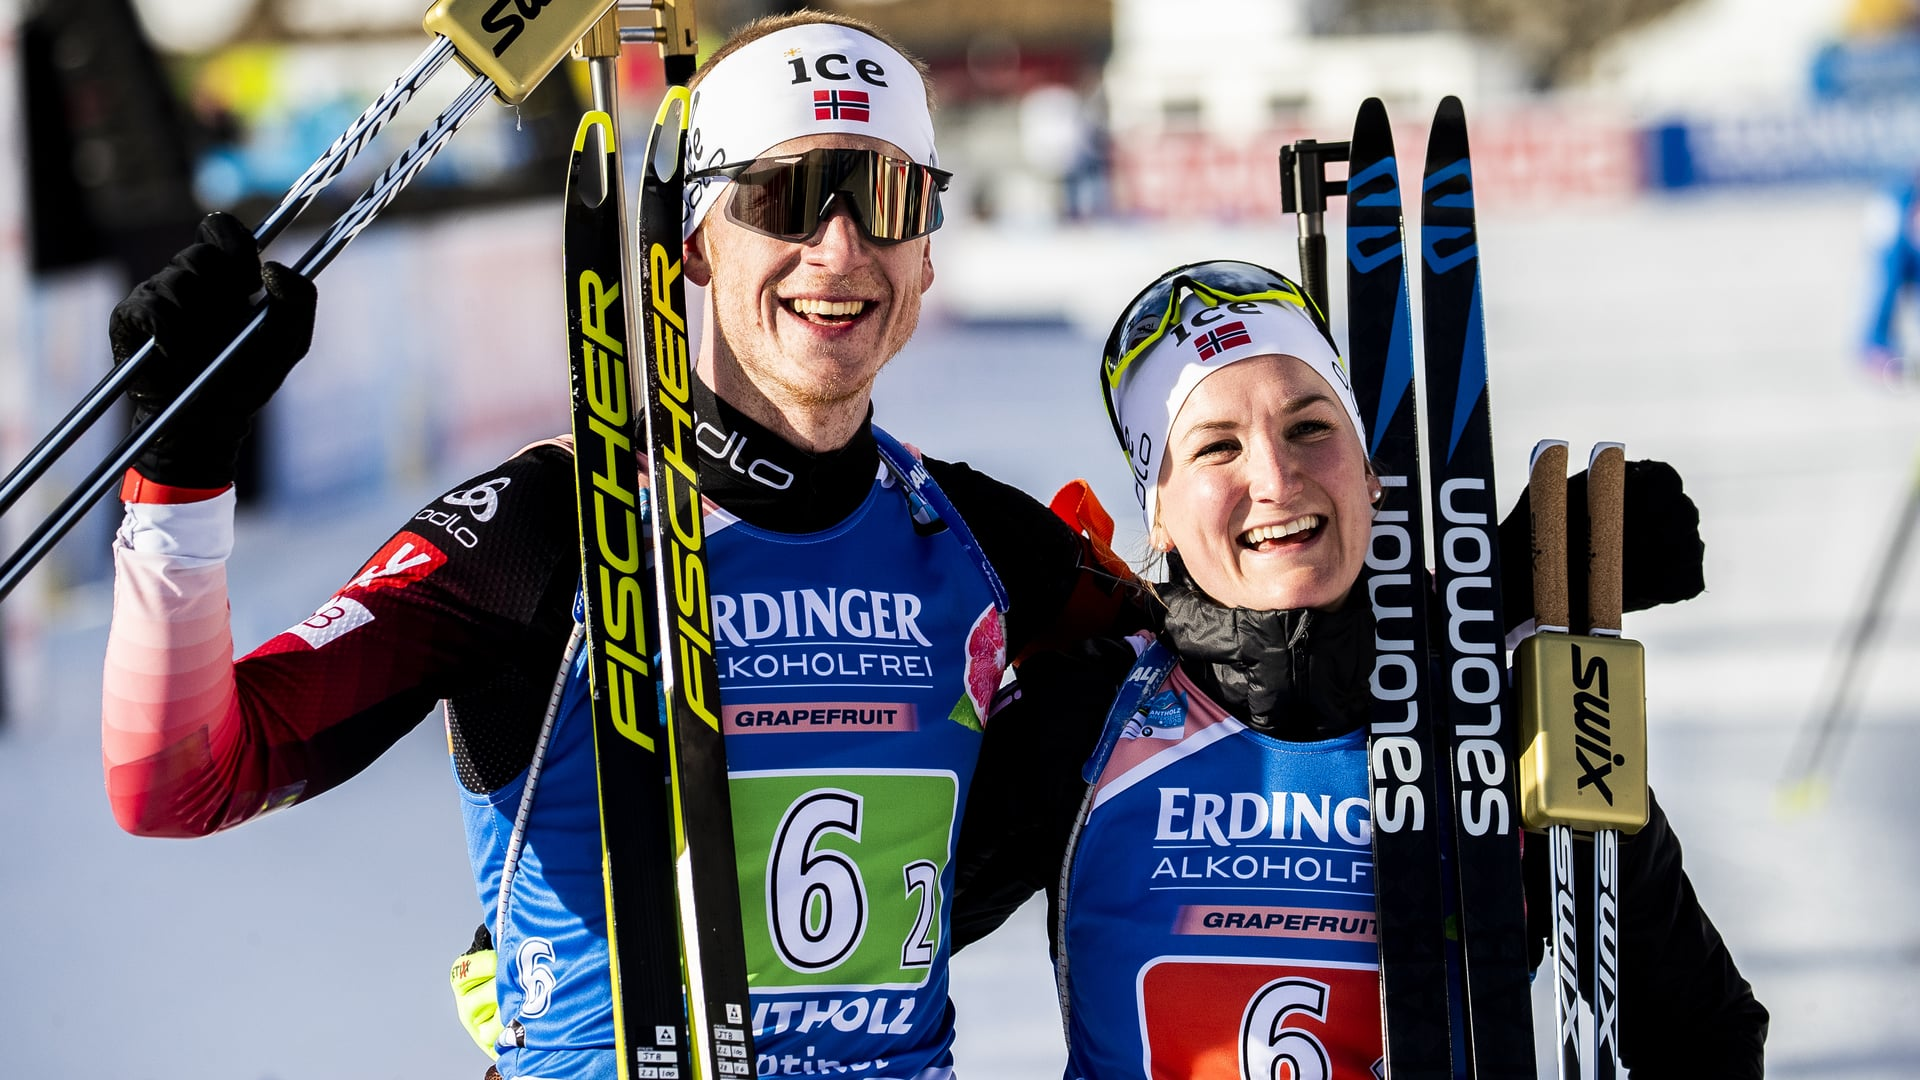 20.02.2020 - Norway remains strongest also in single mixed relay